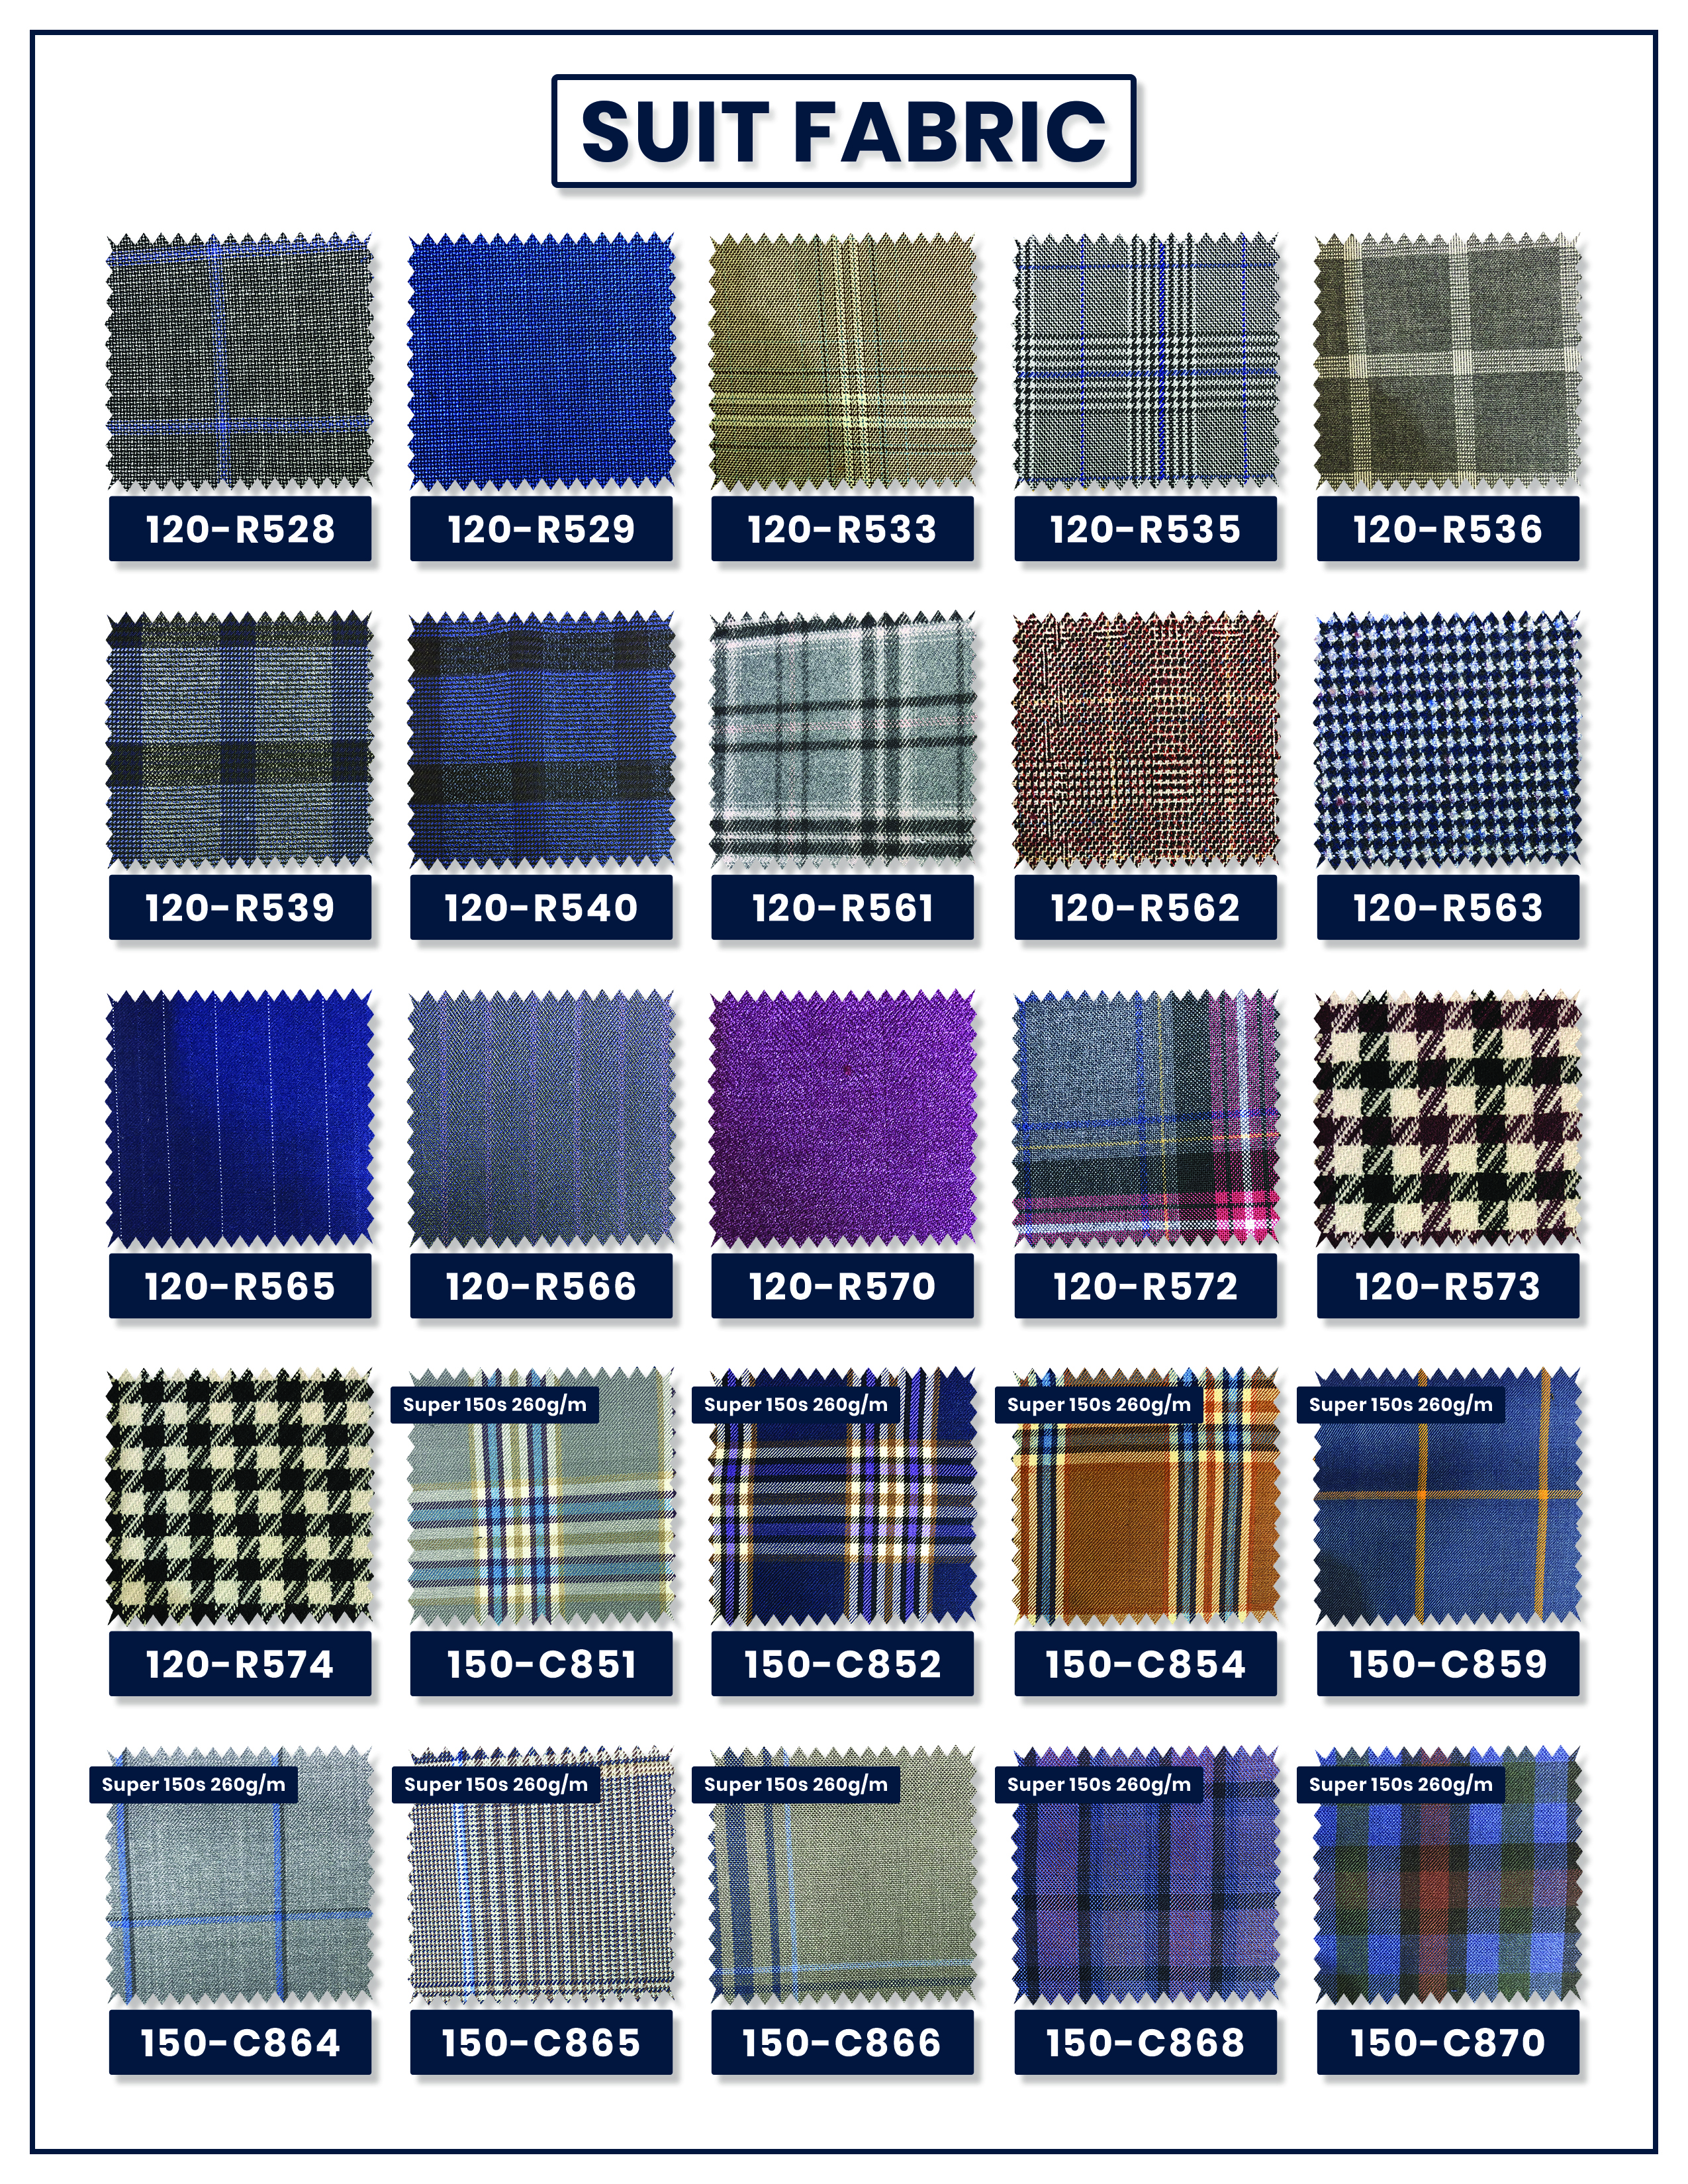 suit-fabric-page-2-cmyk-.jpg